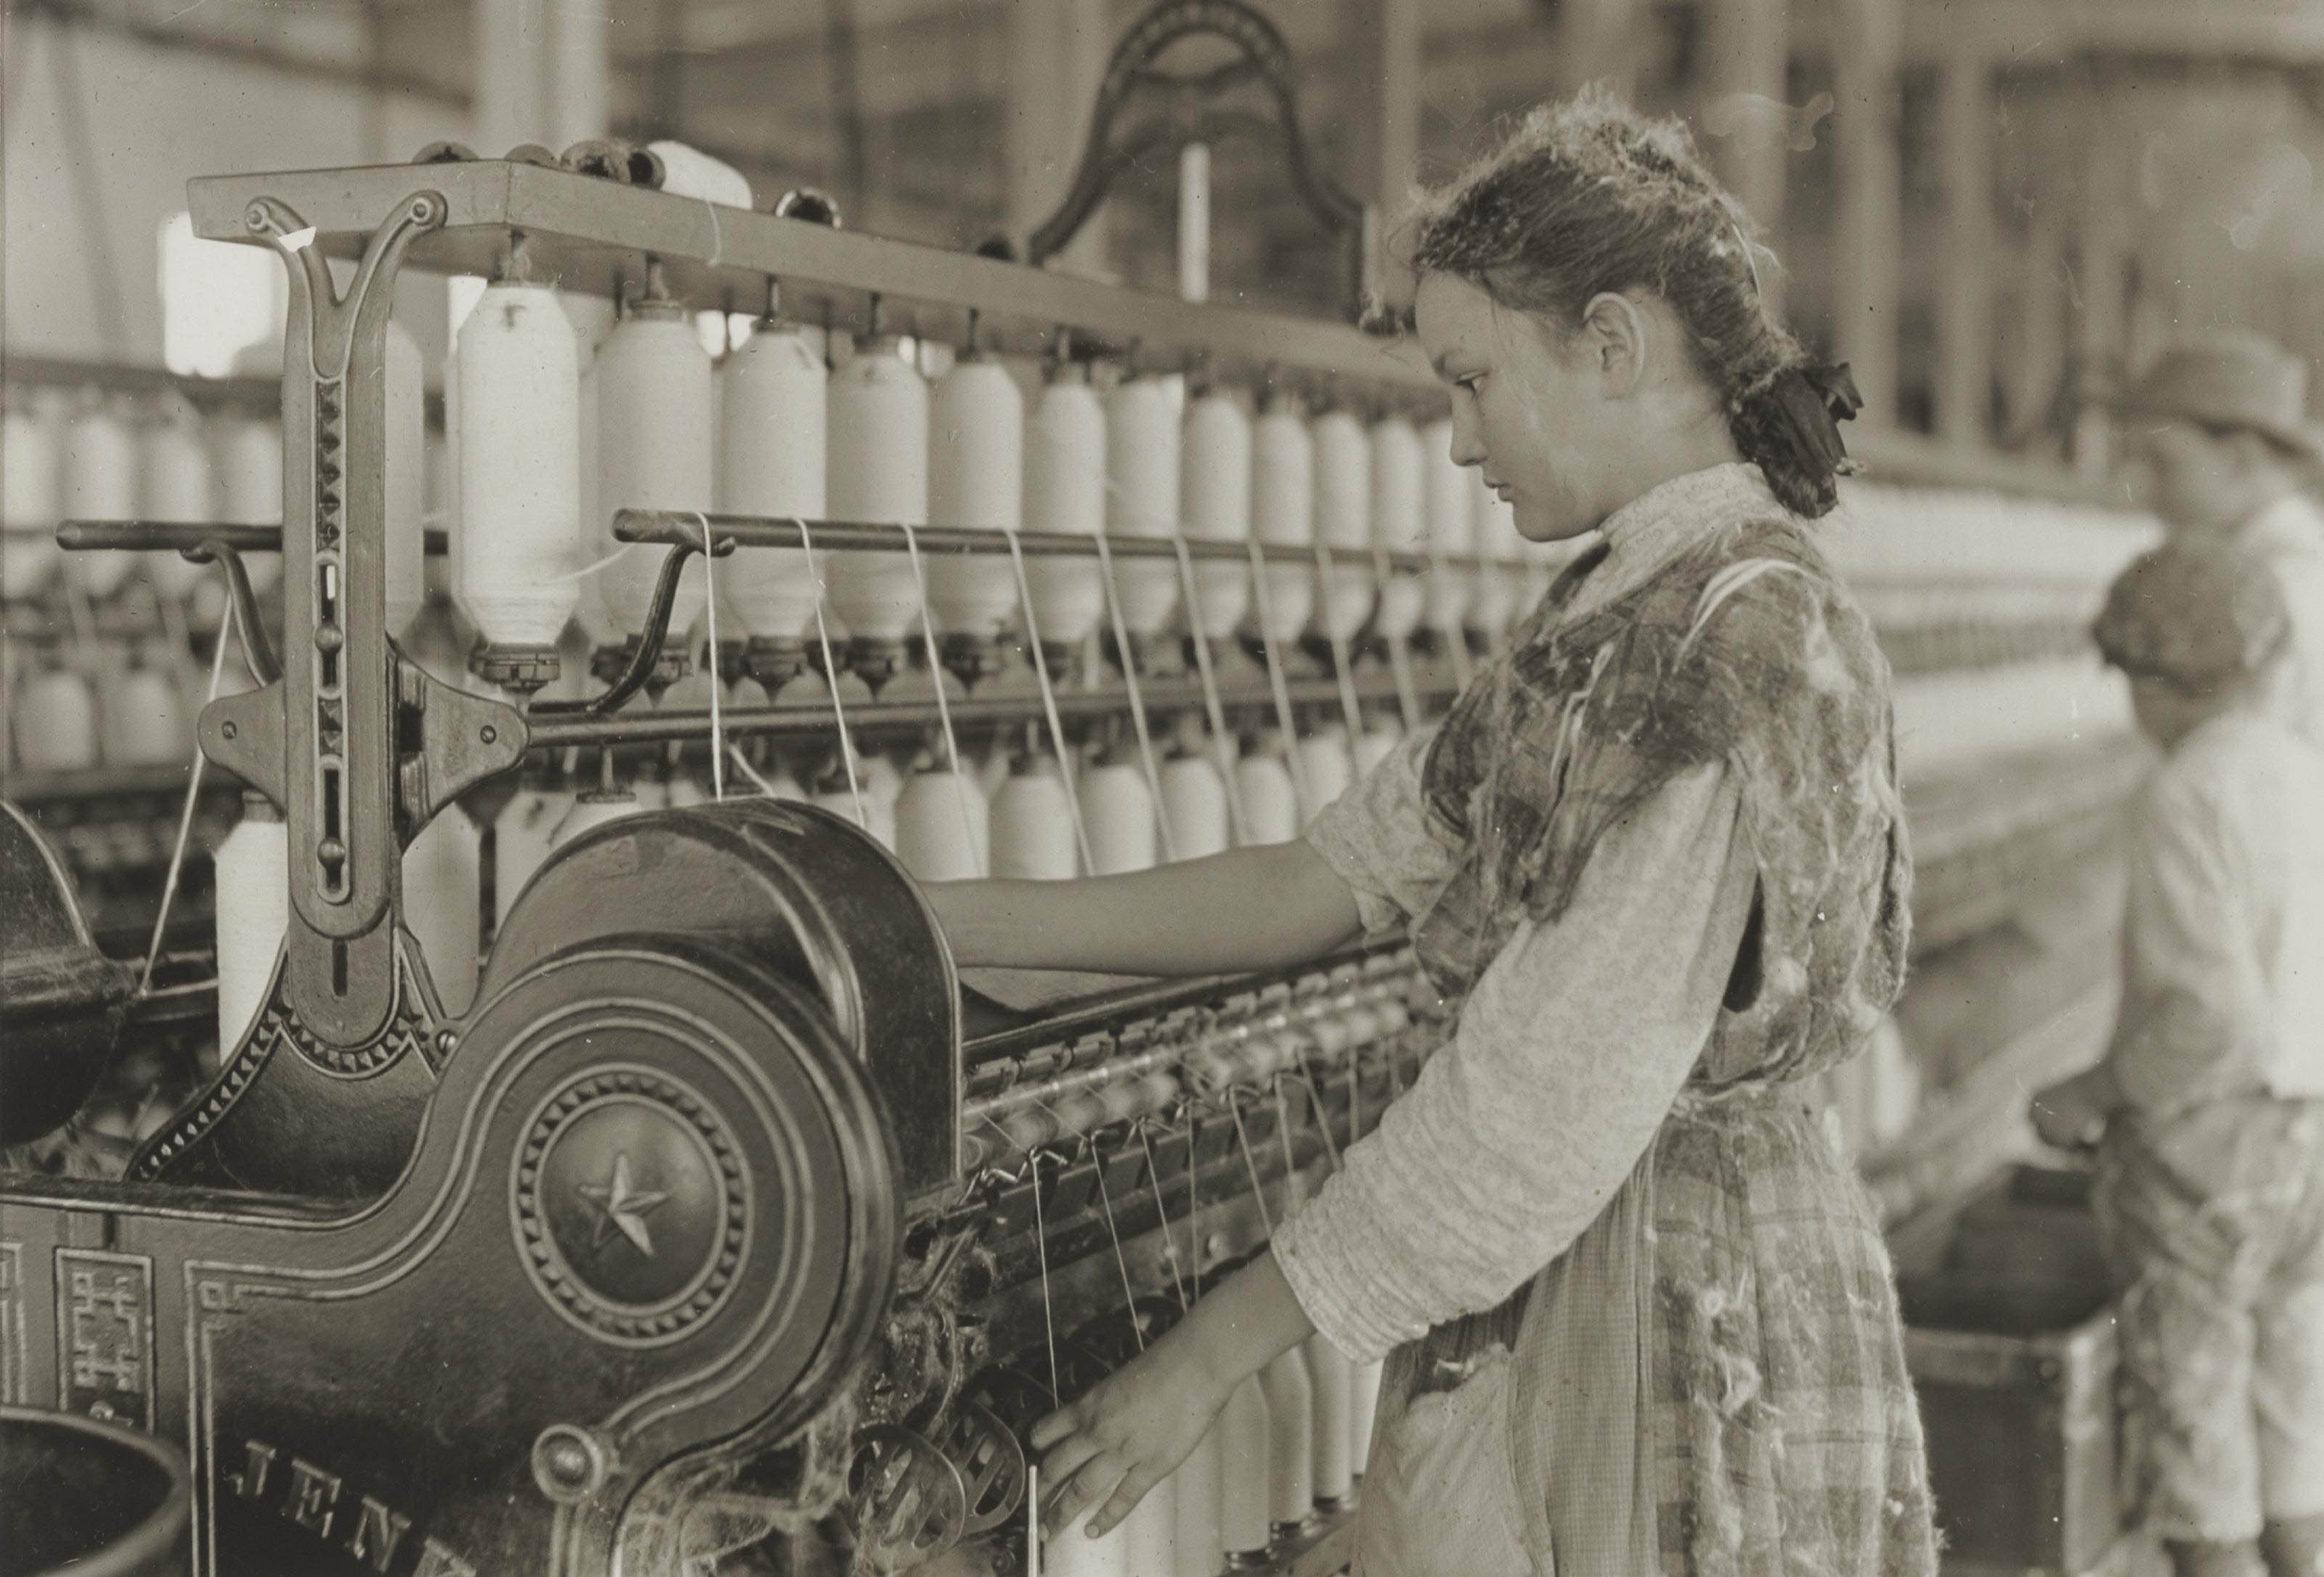 Spinner in cotton mill, 1908